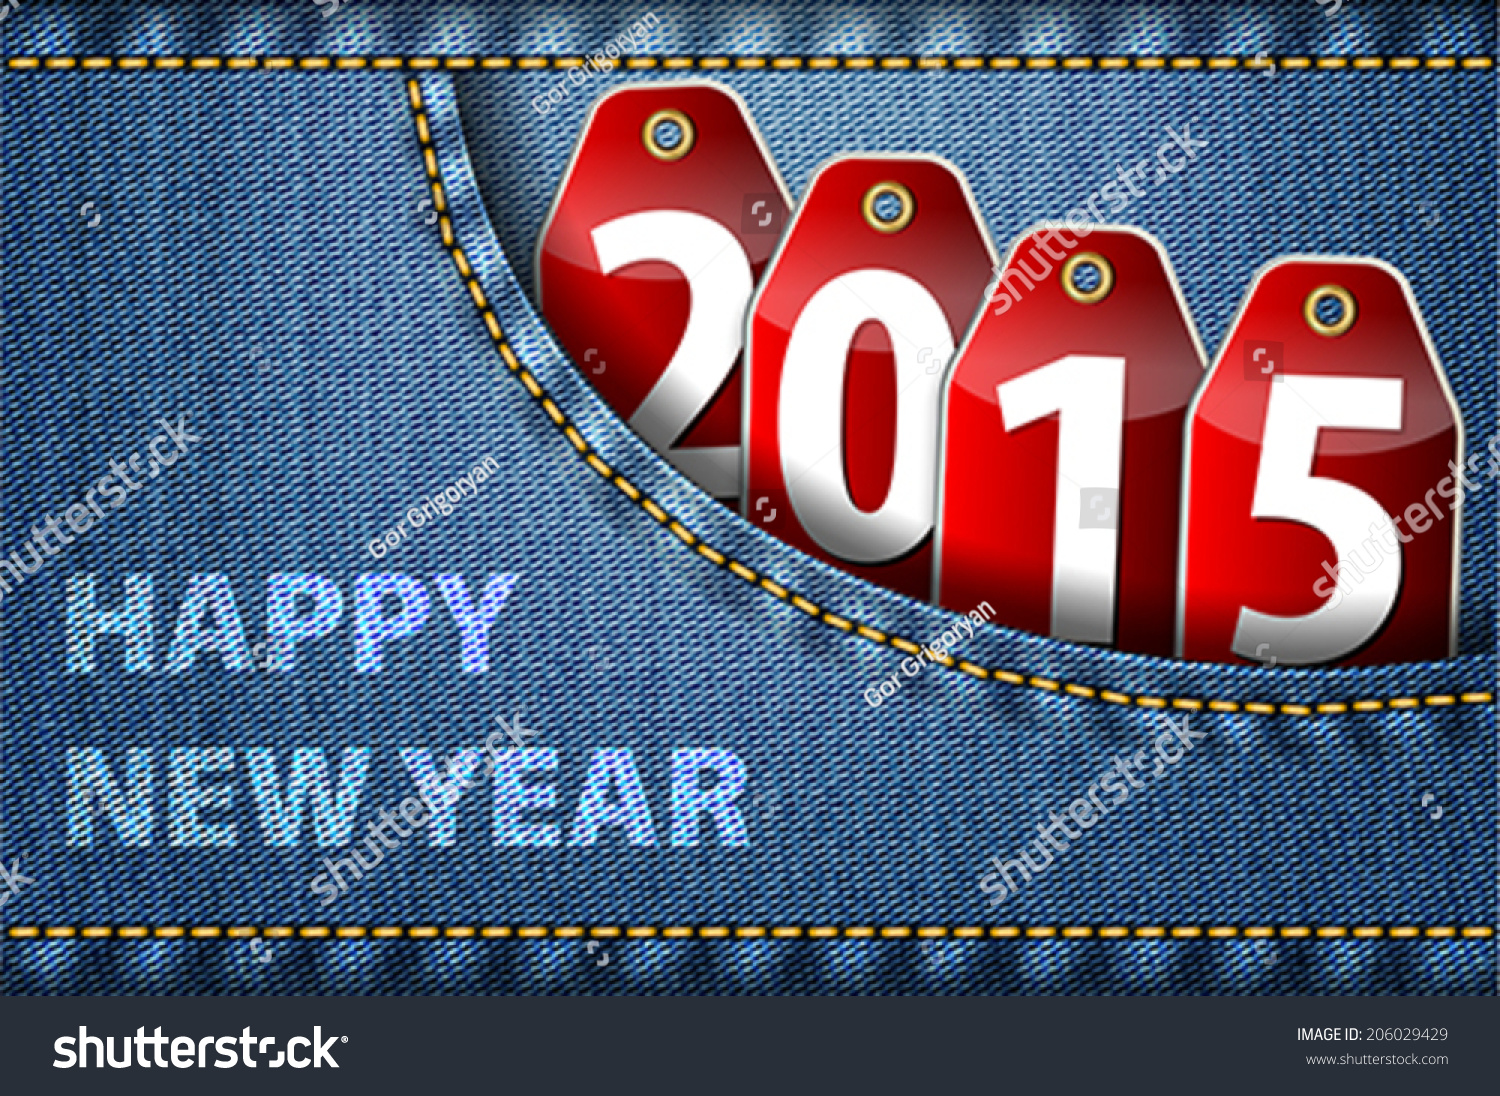 Happy new year greetings 2015 digits stock photo photo vector happy new year greetings and 2015 digits on red tags in blue jeans pocket vector m4hsunfo